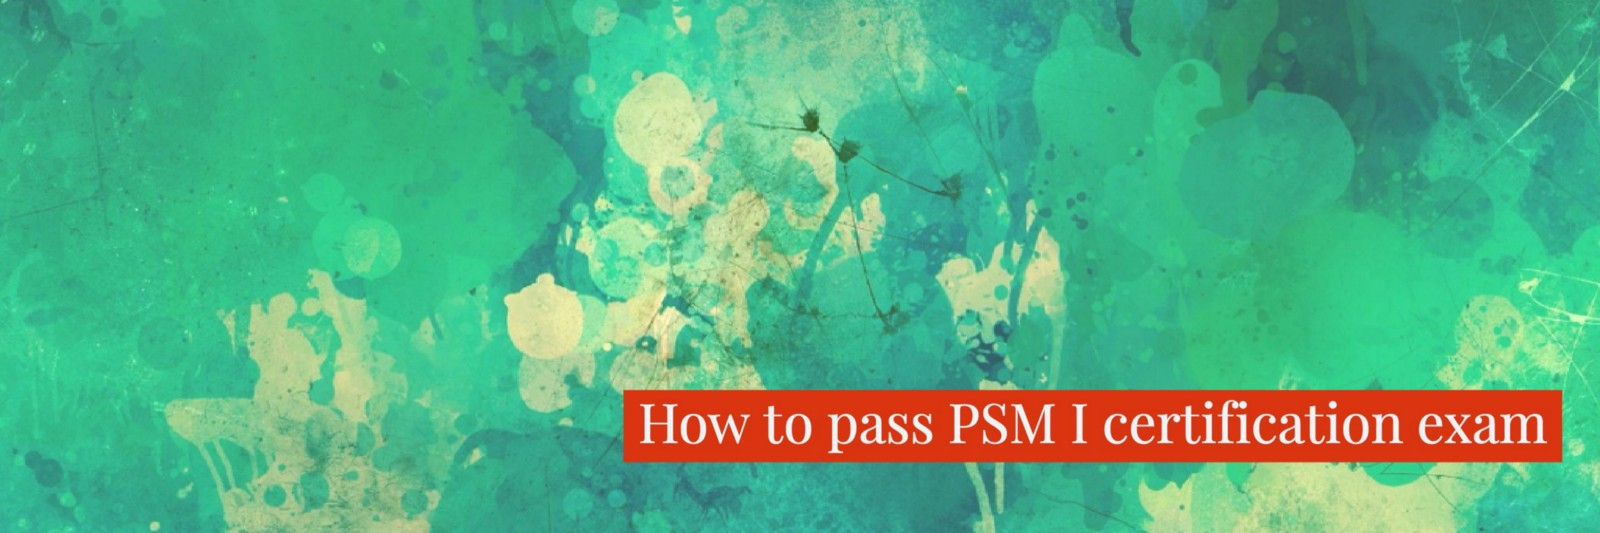 How to pass psm i certification exam tales of a software how to pass psm i certification exam xflitez Image collections